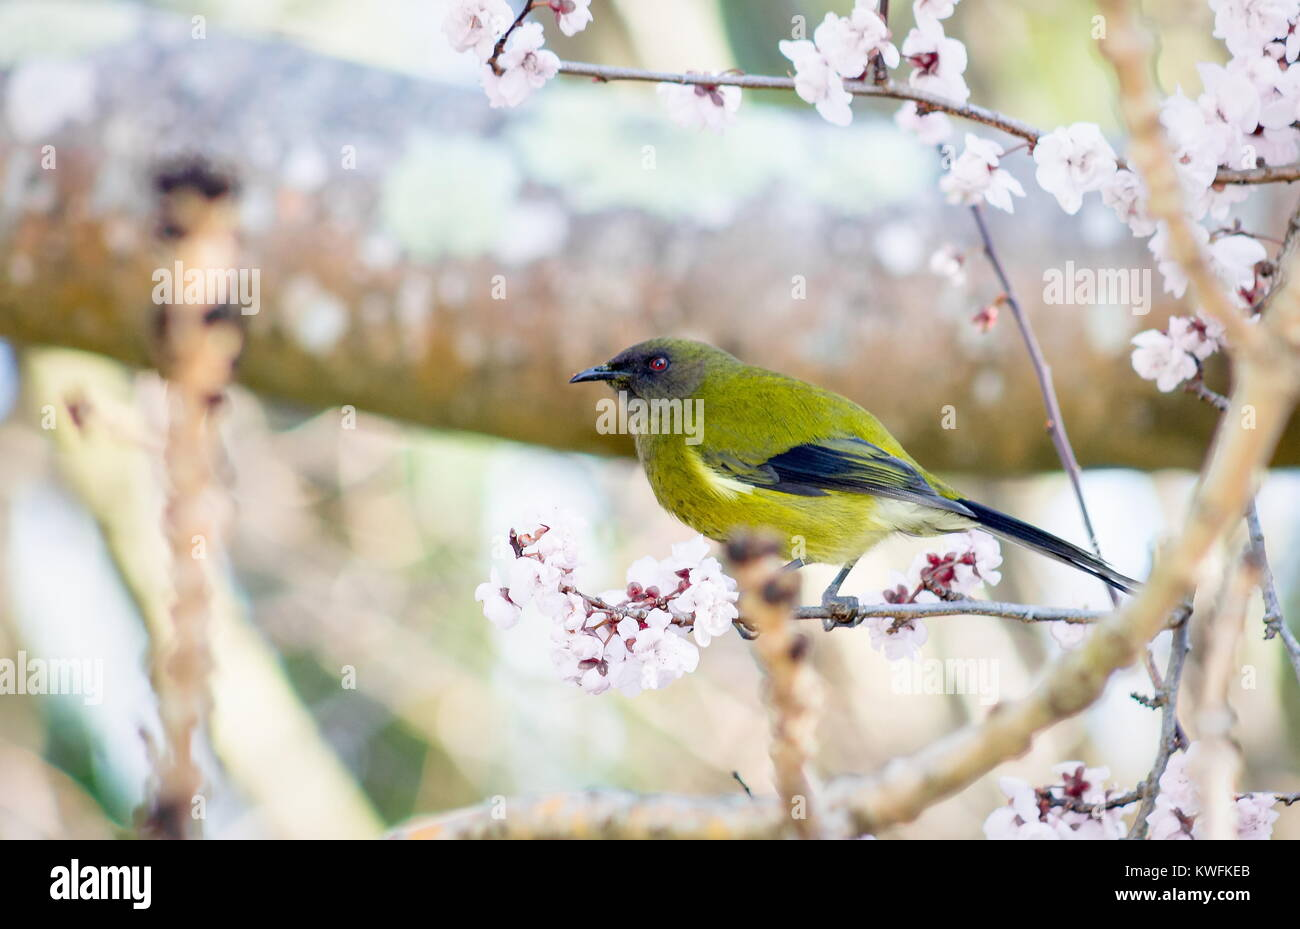 3751418f4 The New Zealand bellbird, also known by its Māori names korimako and  makomako, is a passerine bird endemic to New Zealand.